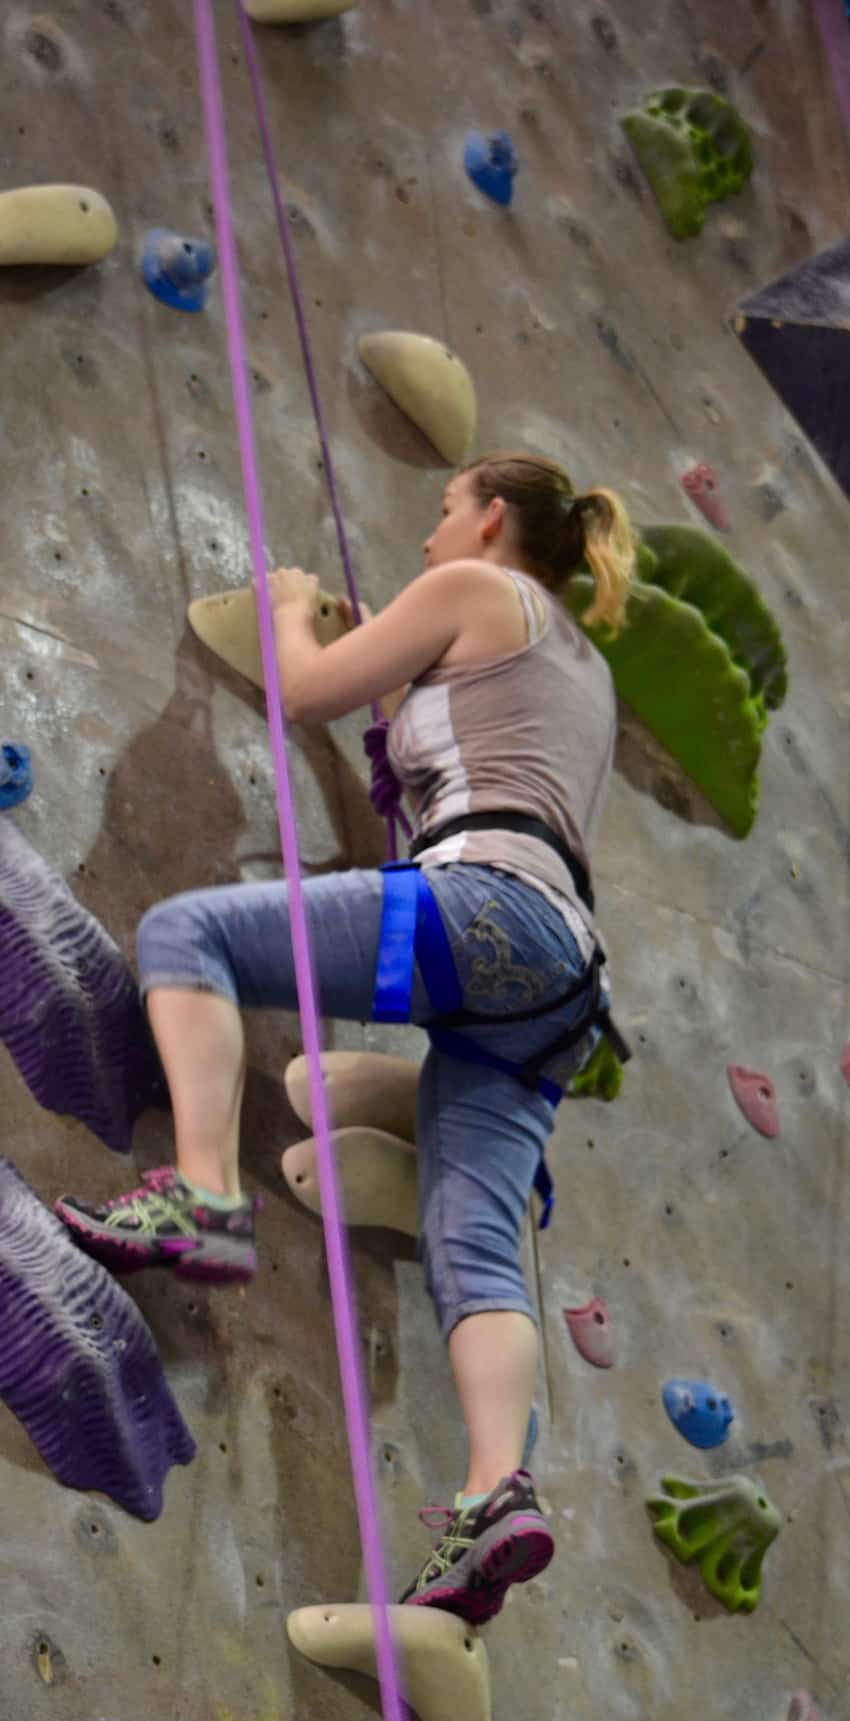 Aiguille Rock Climbing Center - ShareOrlando Review 5